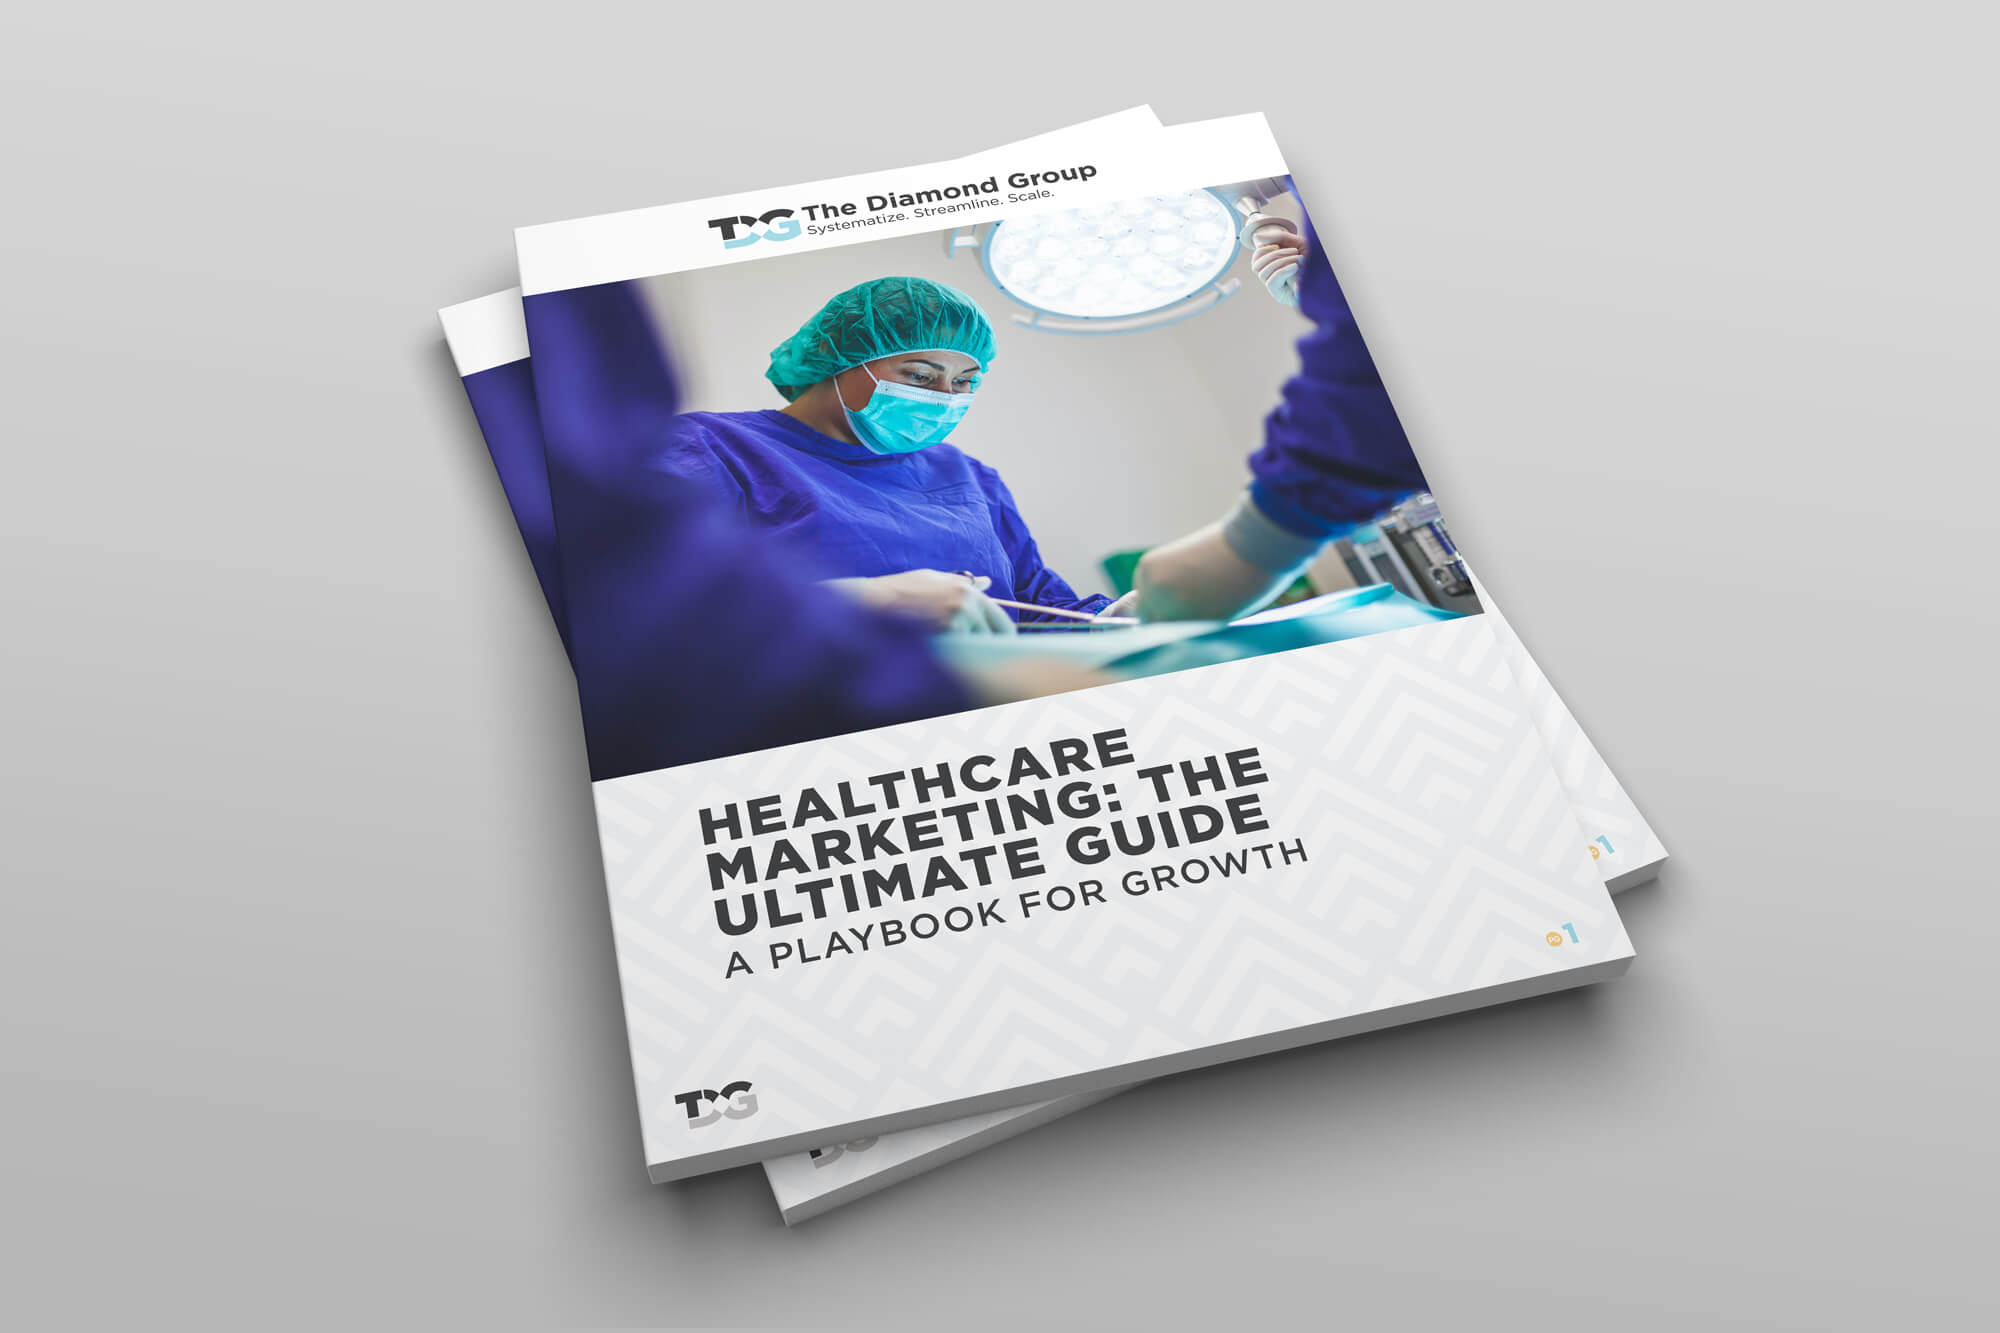 Ultimate guide to healthcare marketing